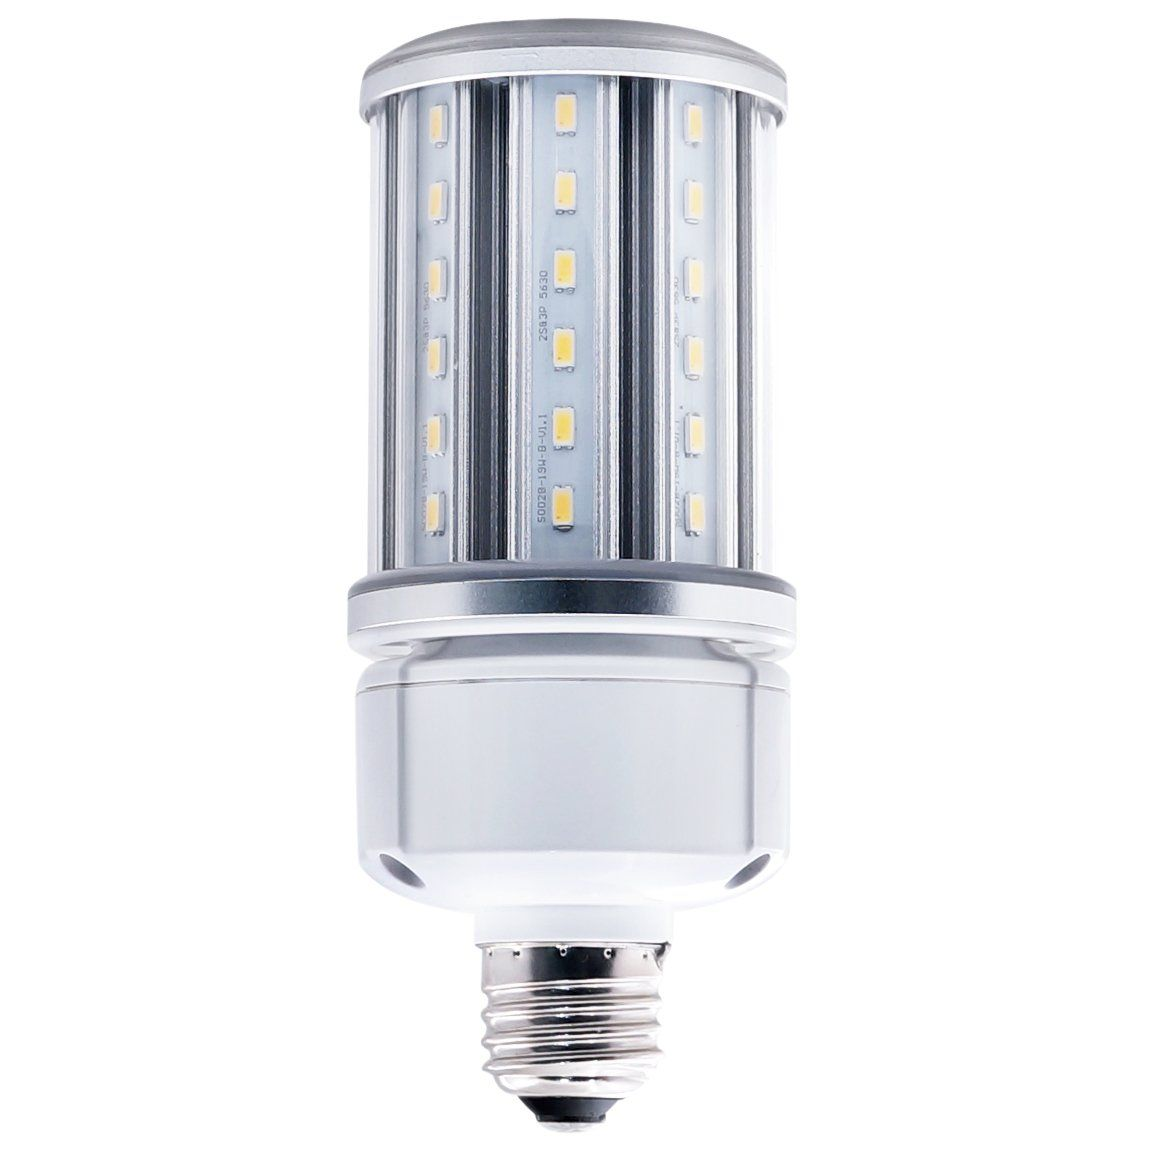 Sunlite Cc Led 19w E26e39 Mv 50k Led 19w 75w Mhl Hpsw Equivalent Corn Bulb Would Like To Know Extra Click The Photo This Is An Bulb Security Lights Led